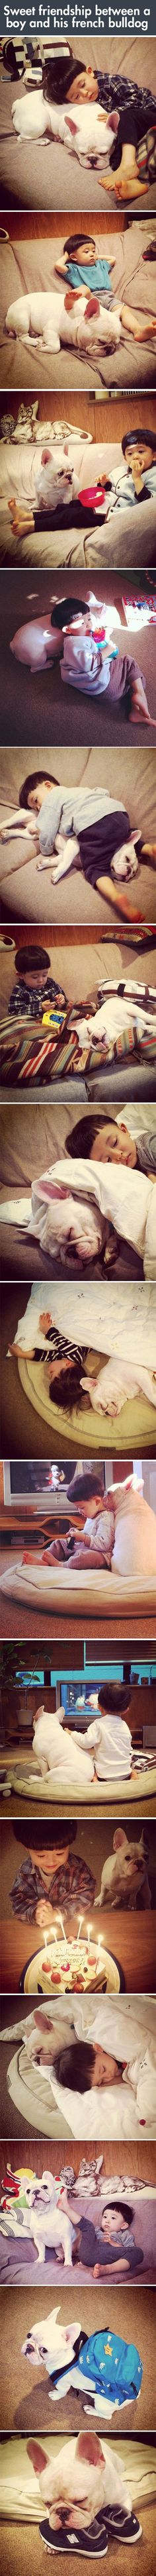 Boy and Bulldog   - funny pictures #funnypictures